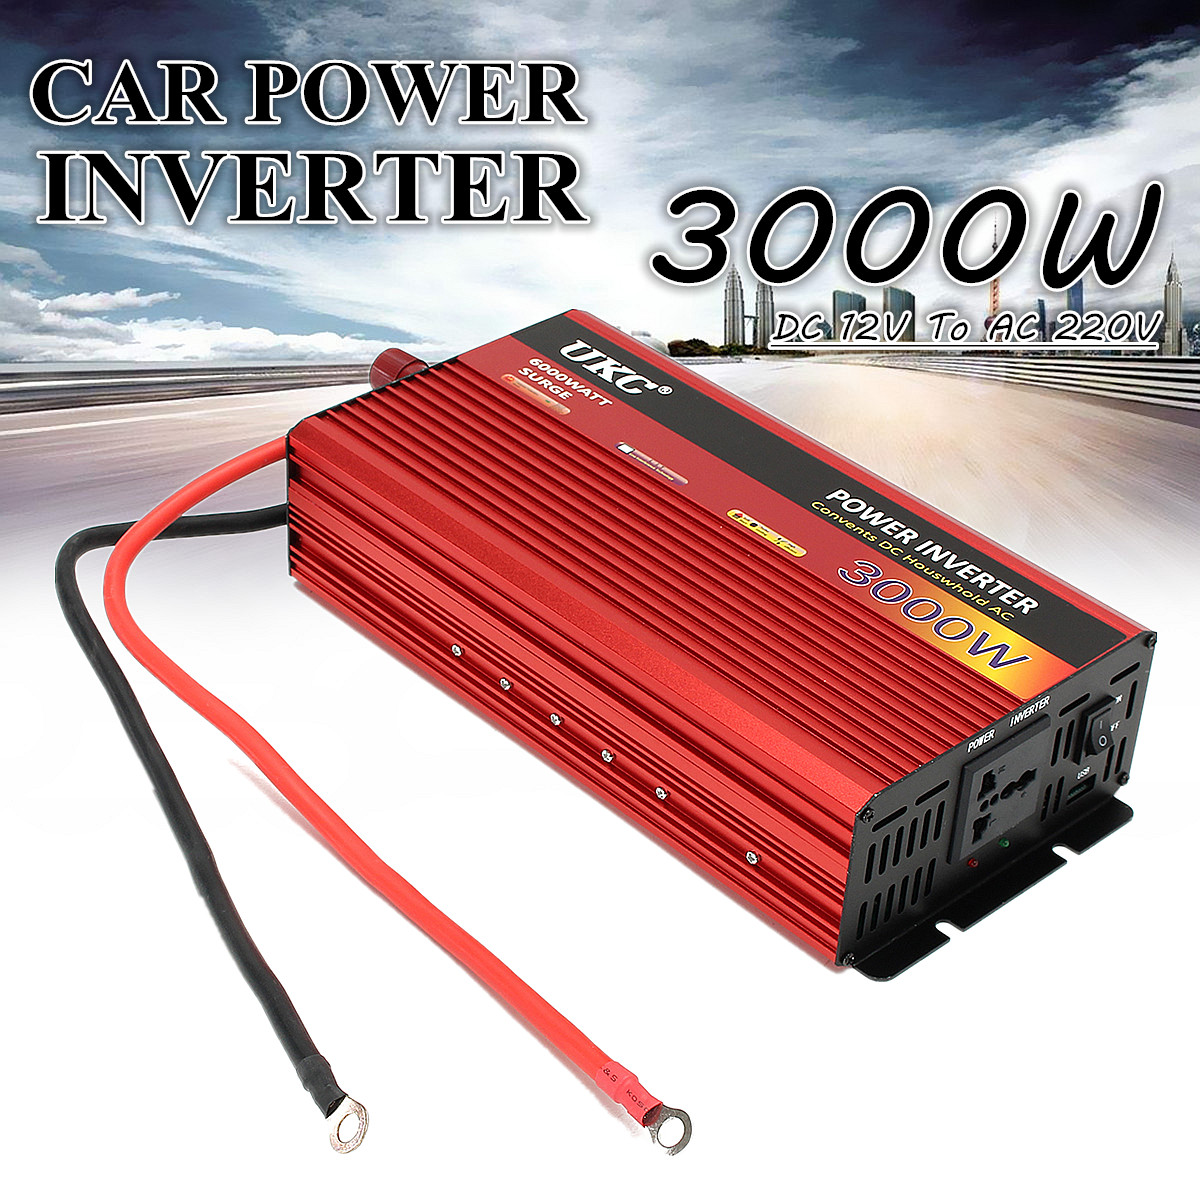 3000W DC 12V To AC 220V Portable Car Modified Sine Wave Power Inverters Converter 80% Inverter Efficiency Built-in Cooling Fan professional 3000w power inverter dc 12v to ac 110v 220v with led indicator light fan cooling universal socket car converter